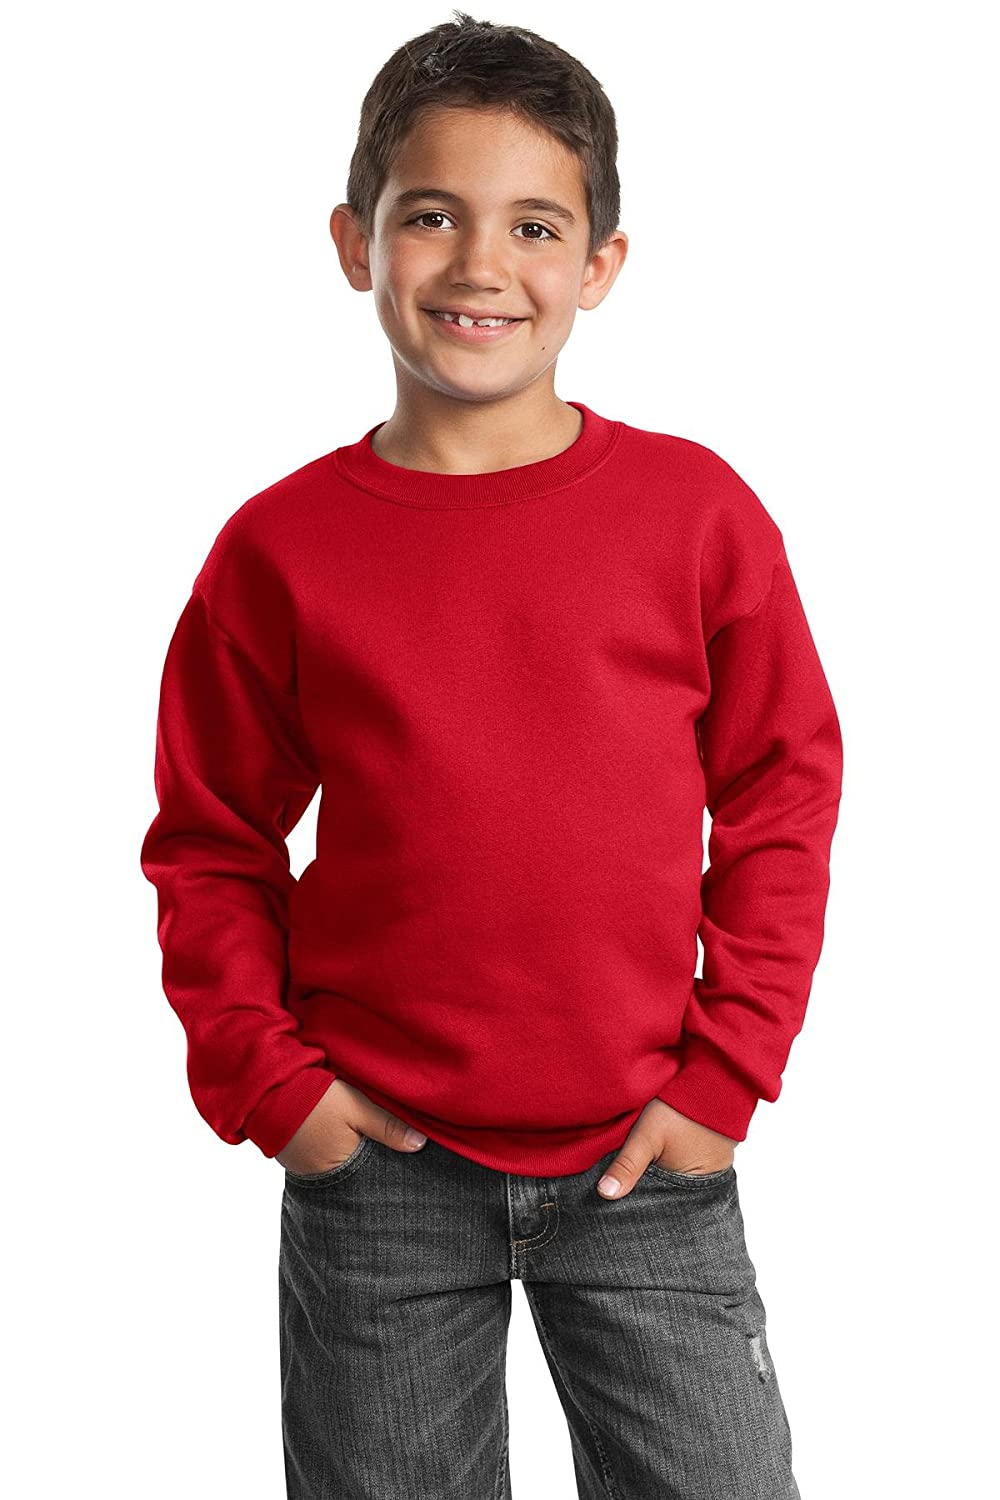 Youth Crewneck Sweatshirt, Color: Red, Size: Medium